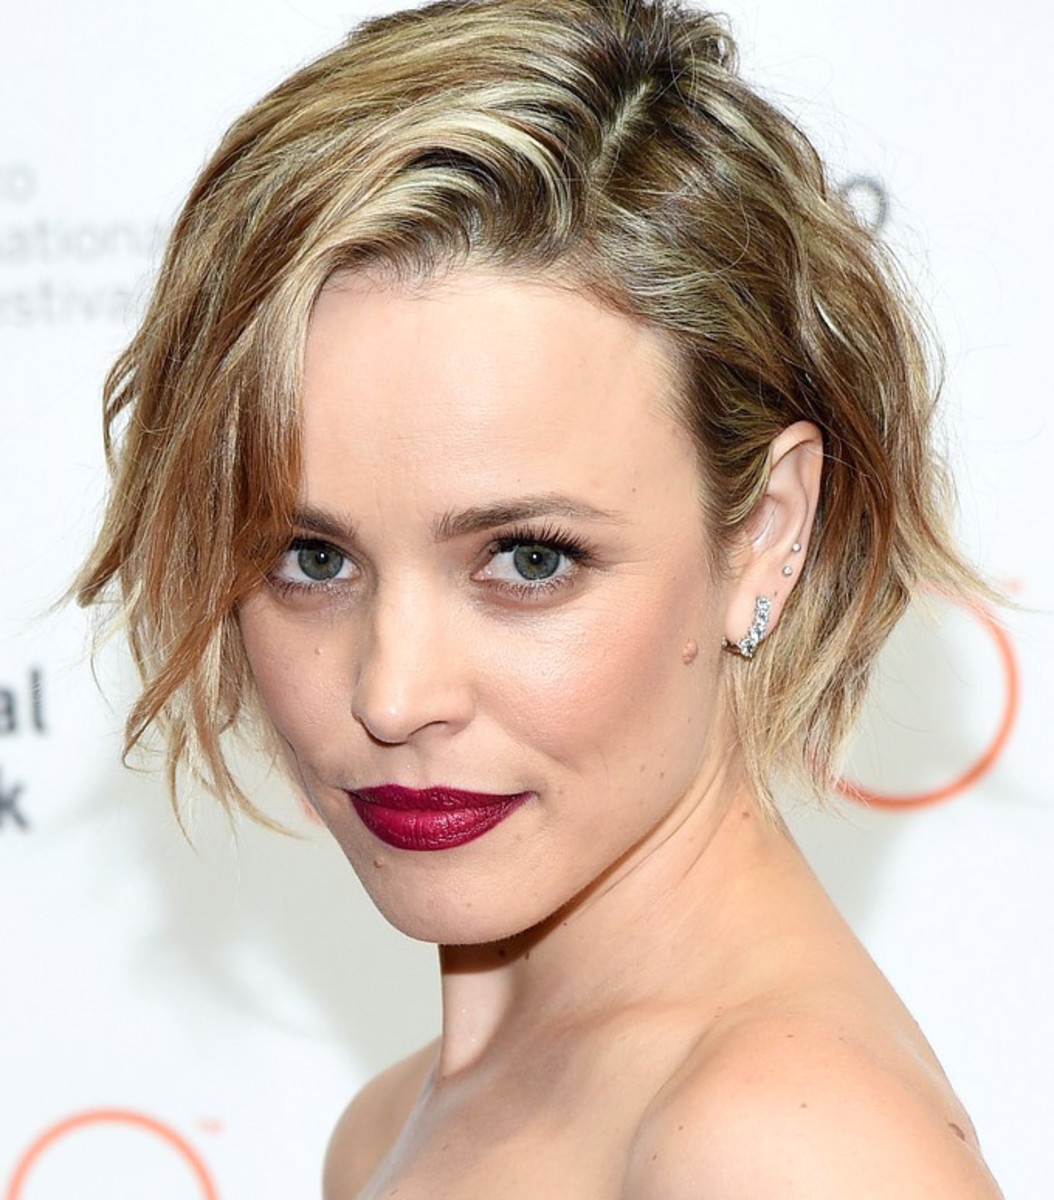 RACHEL MCADAMS MAKEUP AND HAIR, TIFF 2015 - Beautygeeks Rachel Mcadams